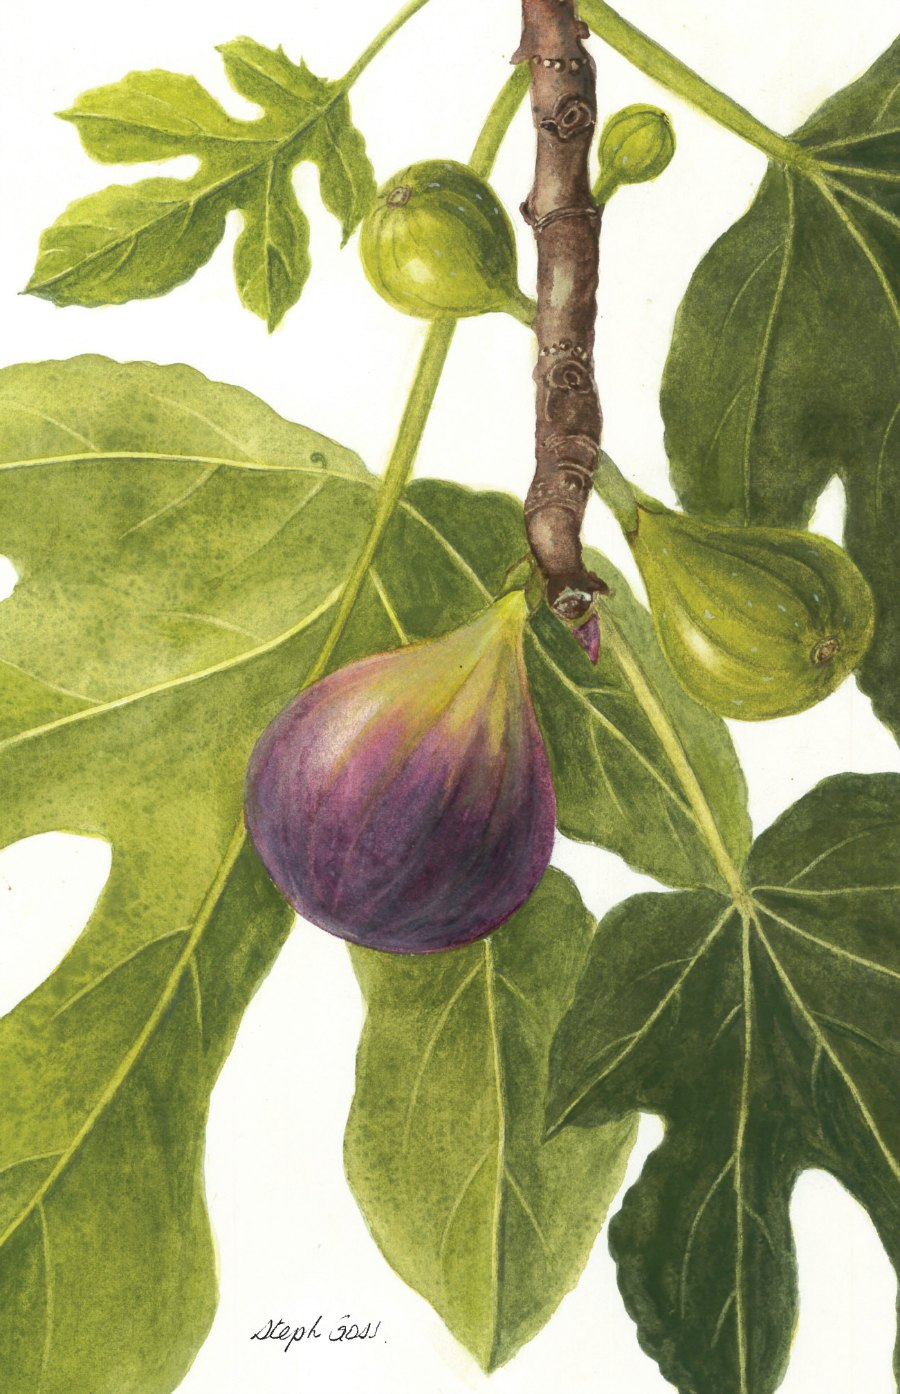 39. Purple fig